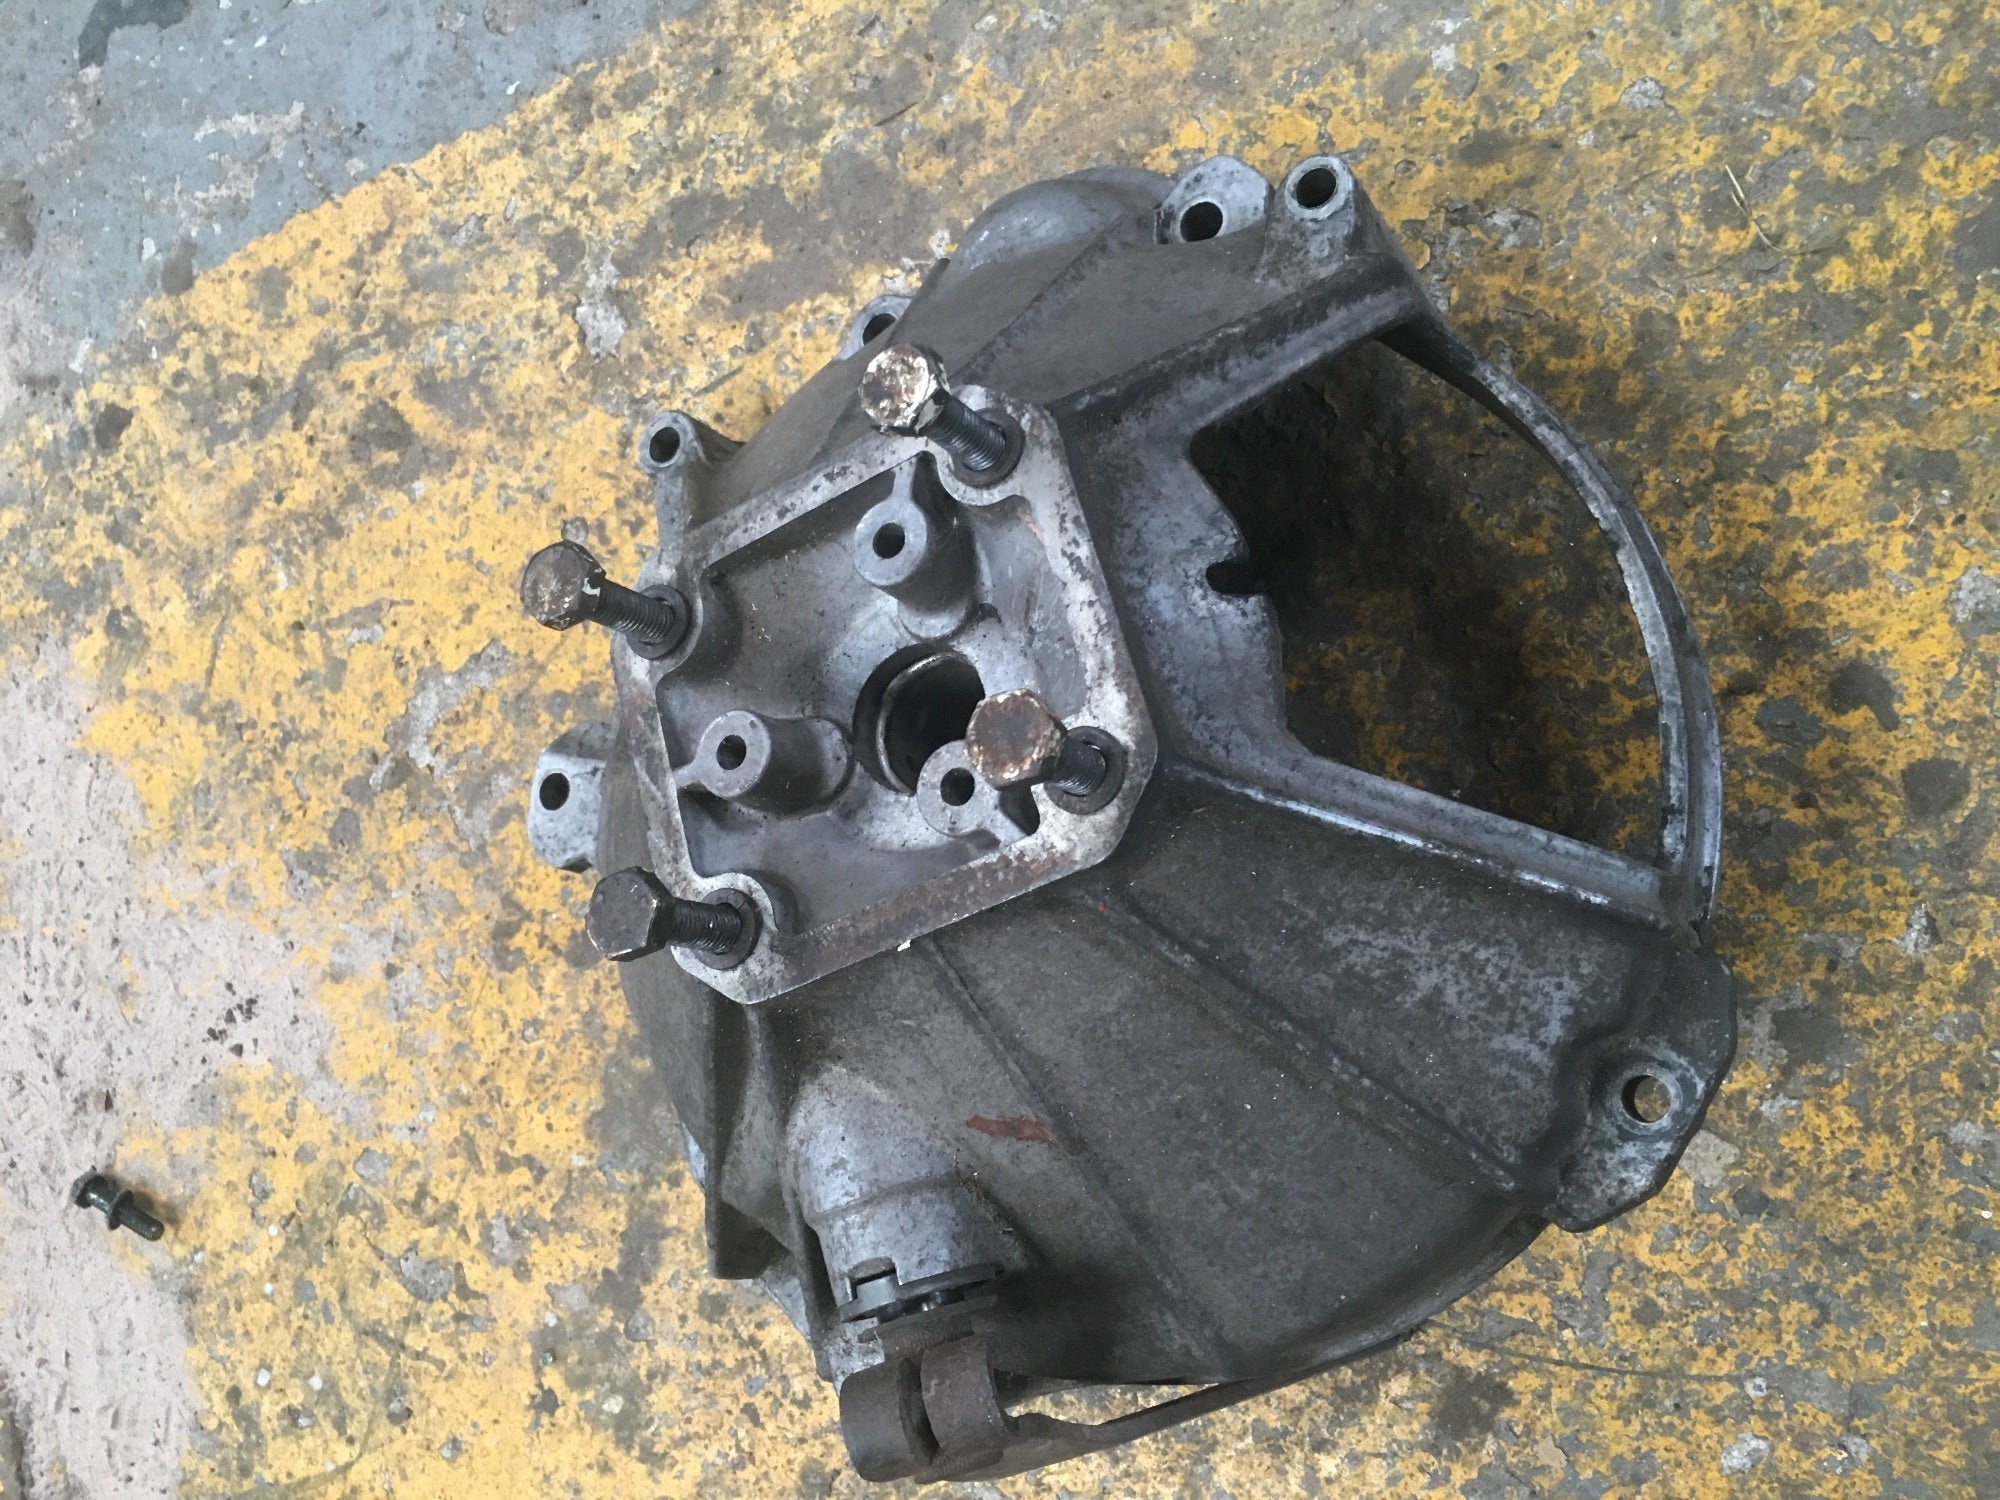 Porsche 924 (1975-1989) Clutch Housing Bell Housing 477 521 111 ((F14) - Porsche Spares UK Ltd